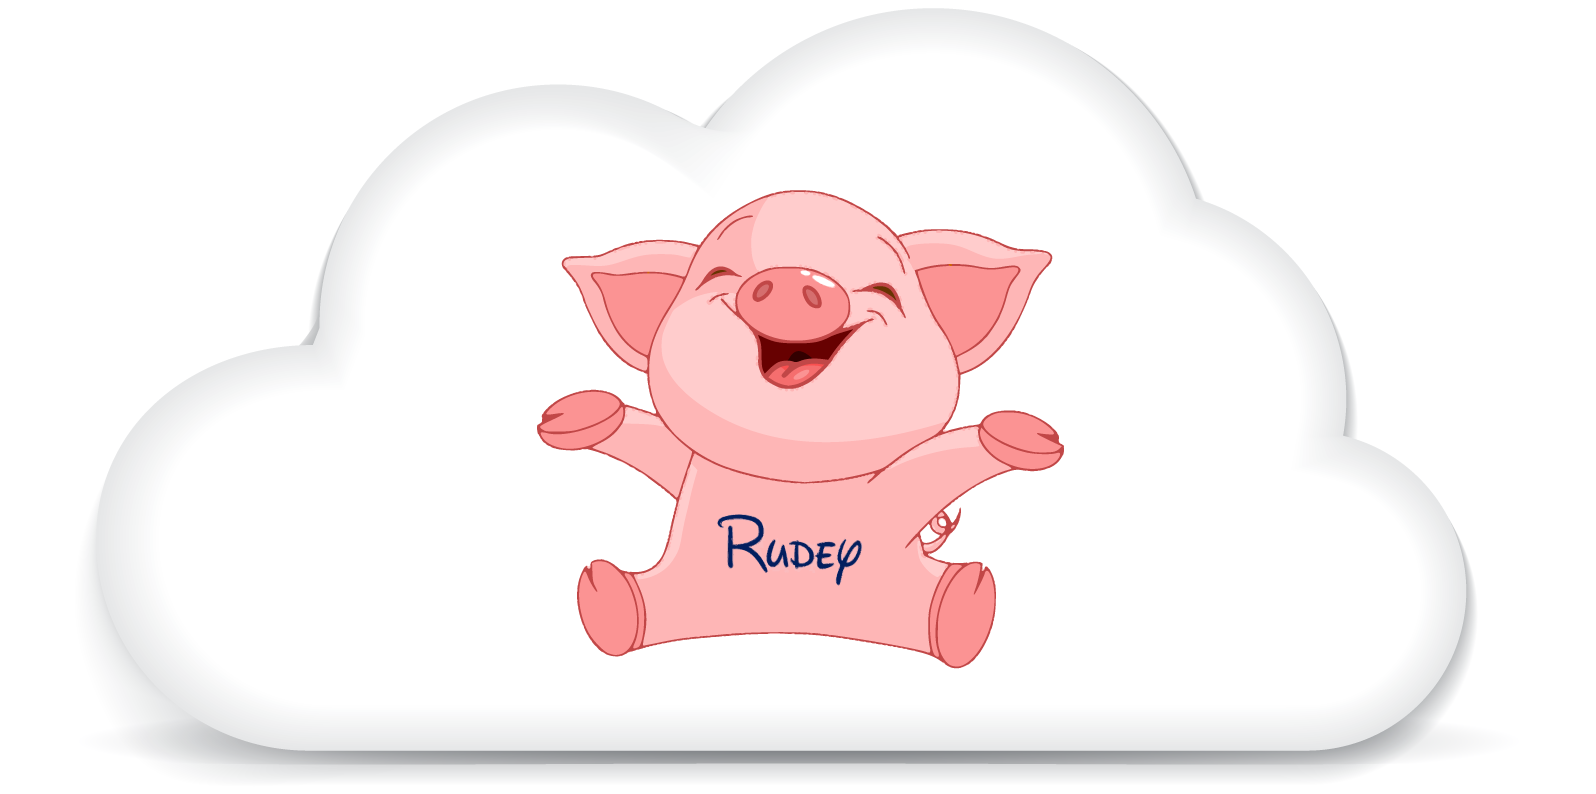 Cloud Icon with Rudey the pig in the center.